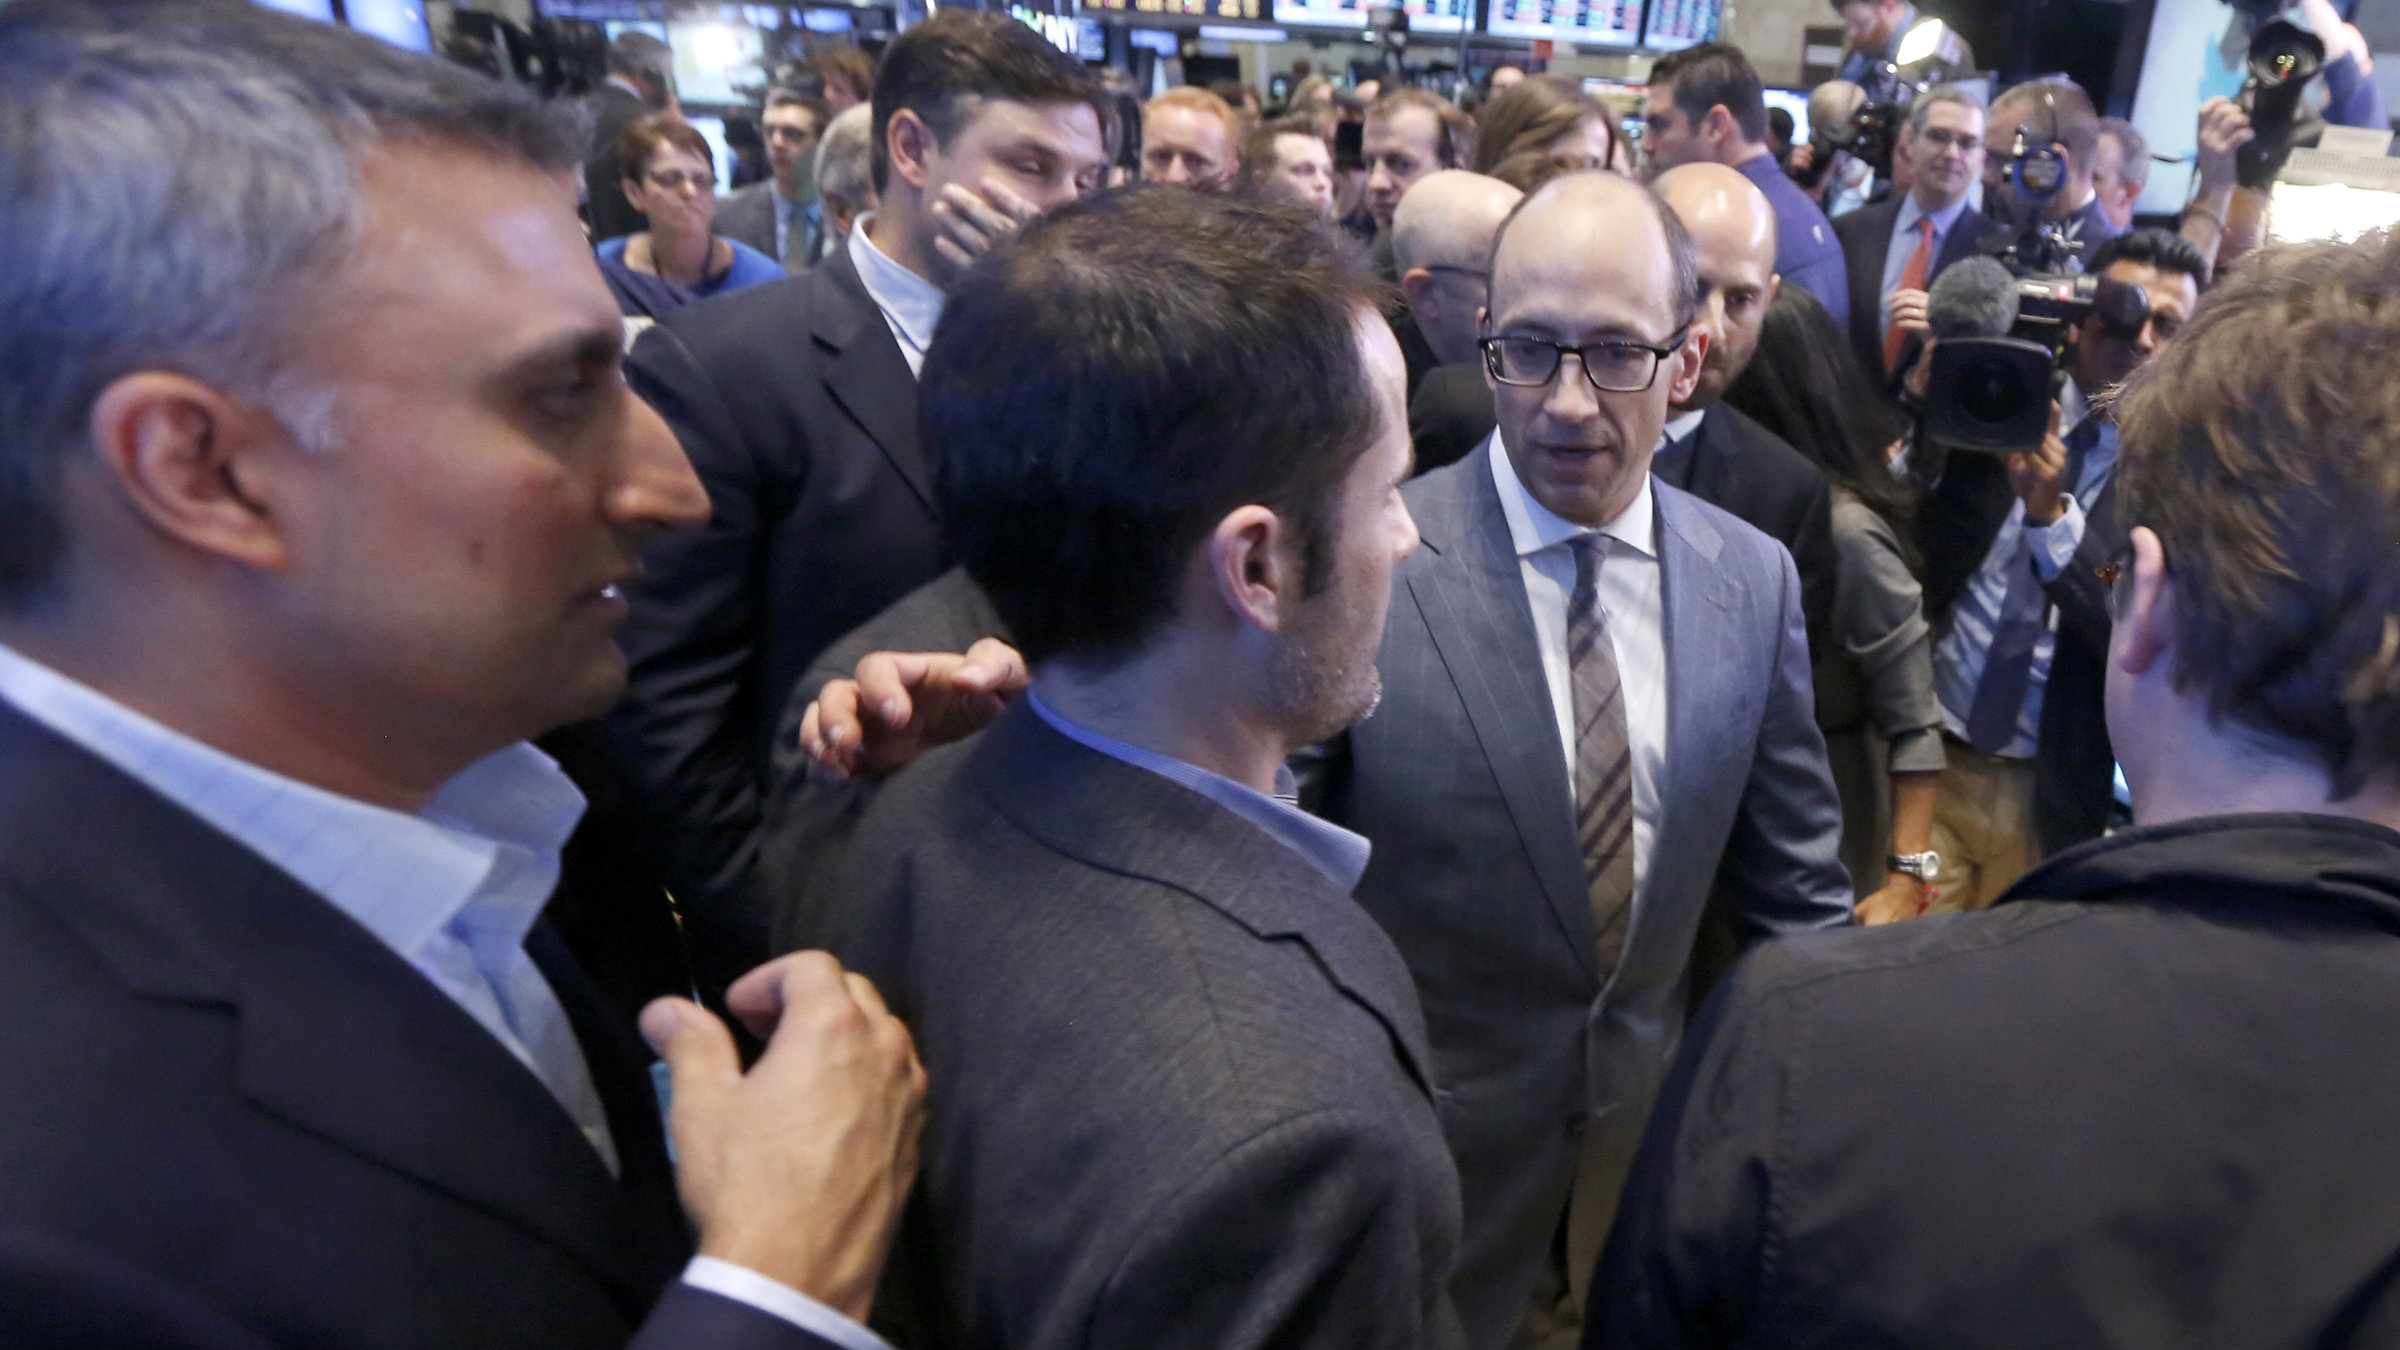 Dick Costolo lapping it up on the floor of the NYSE.